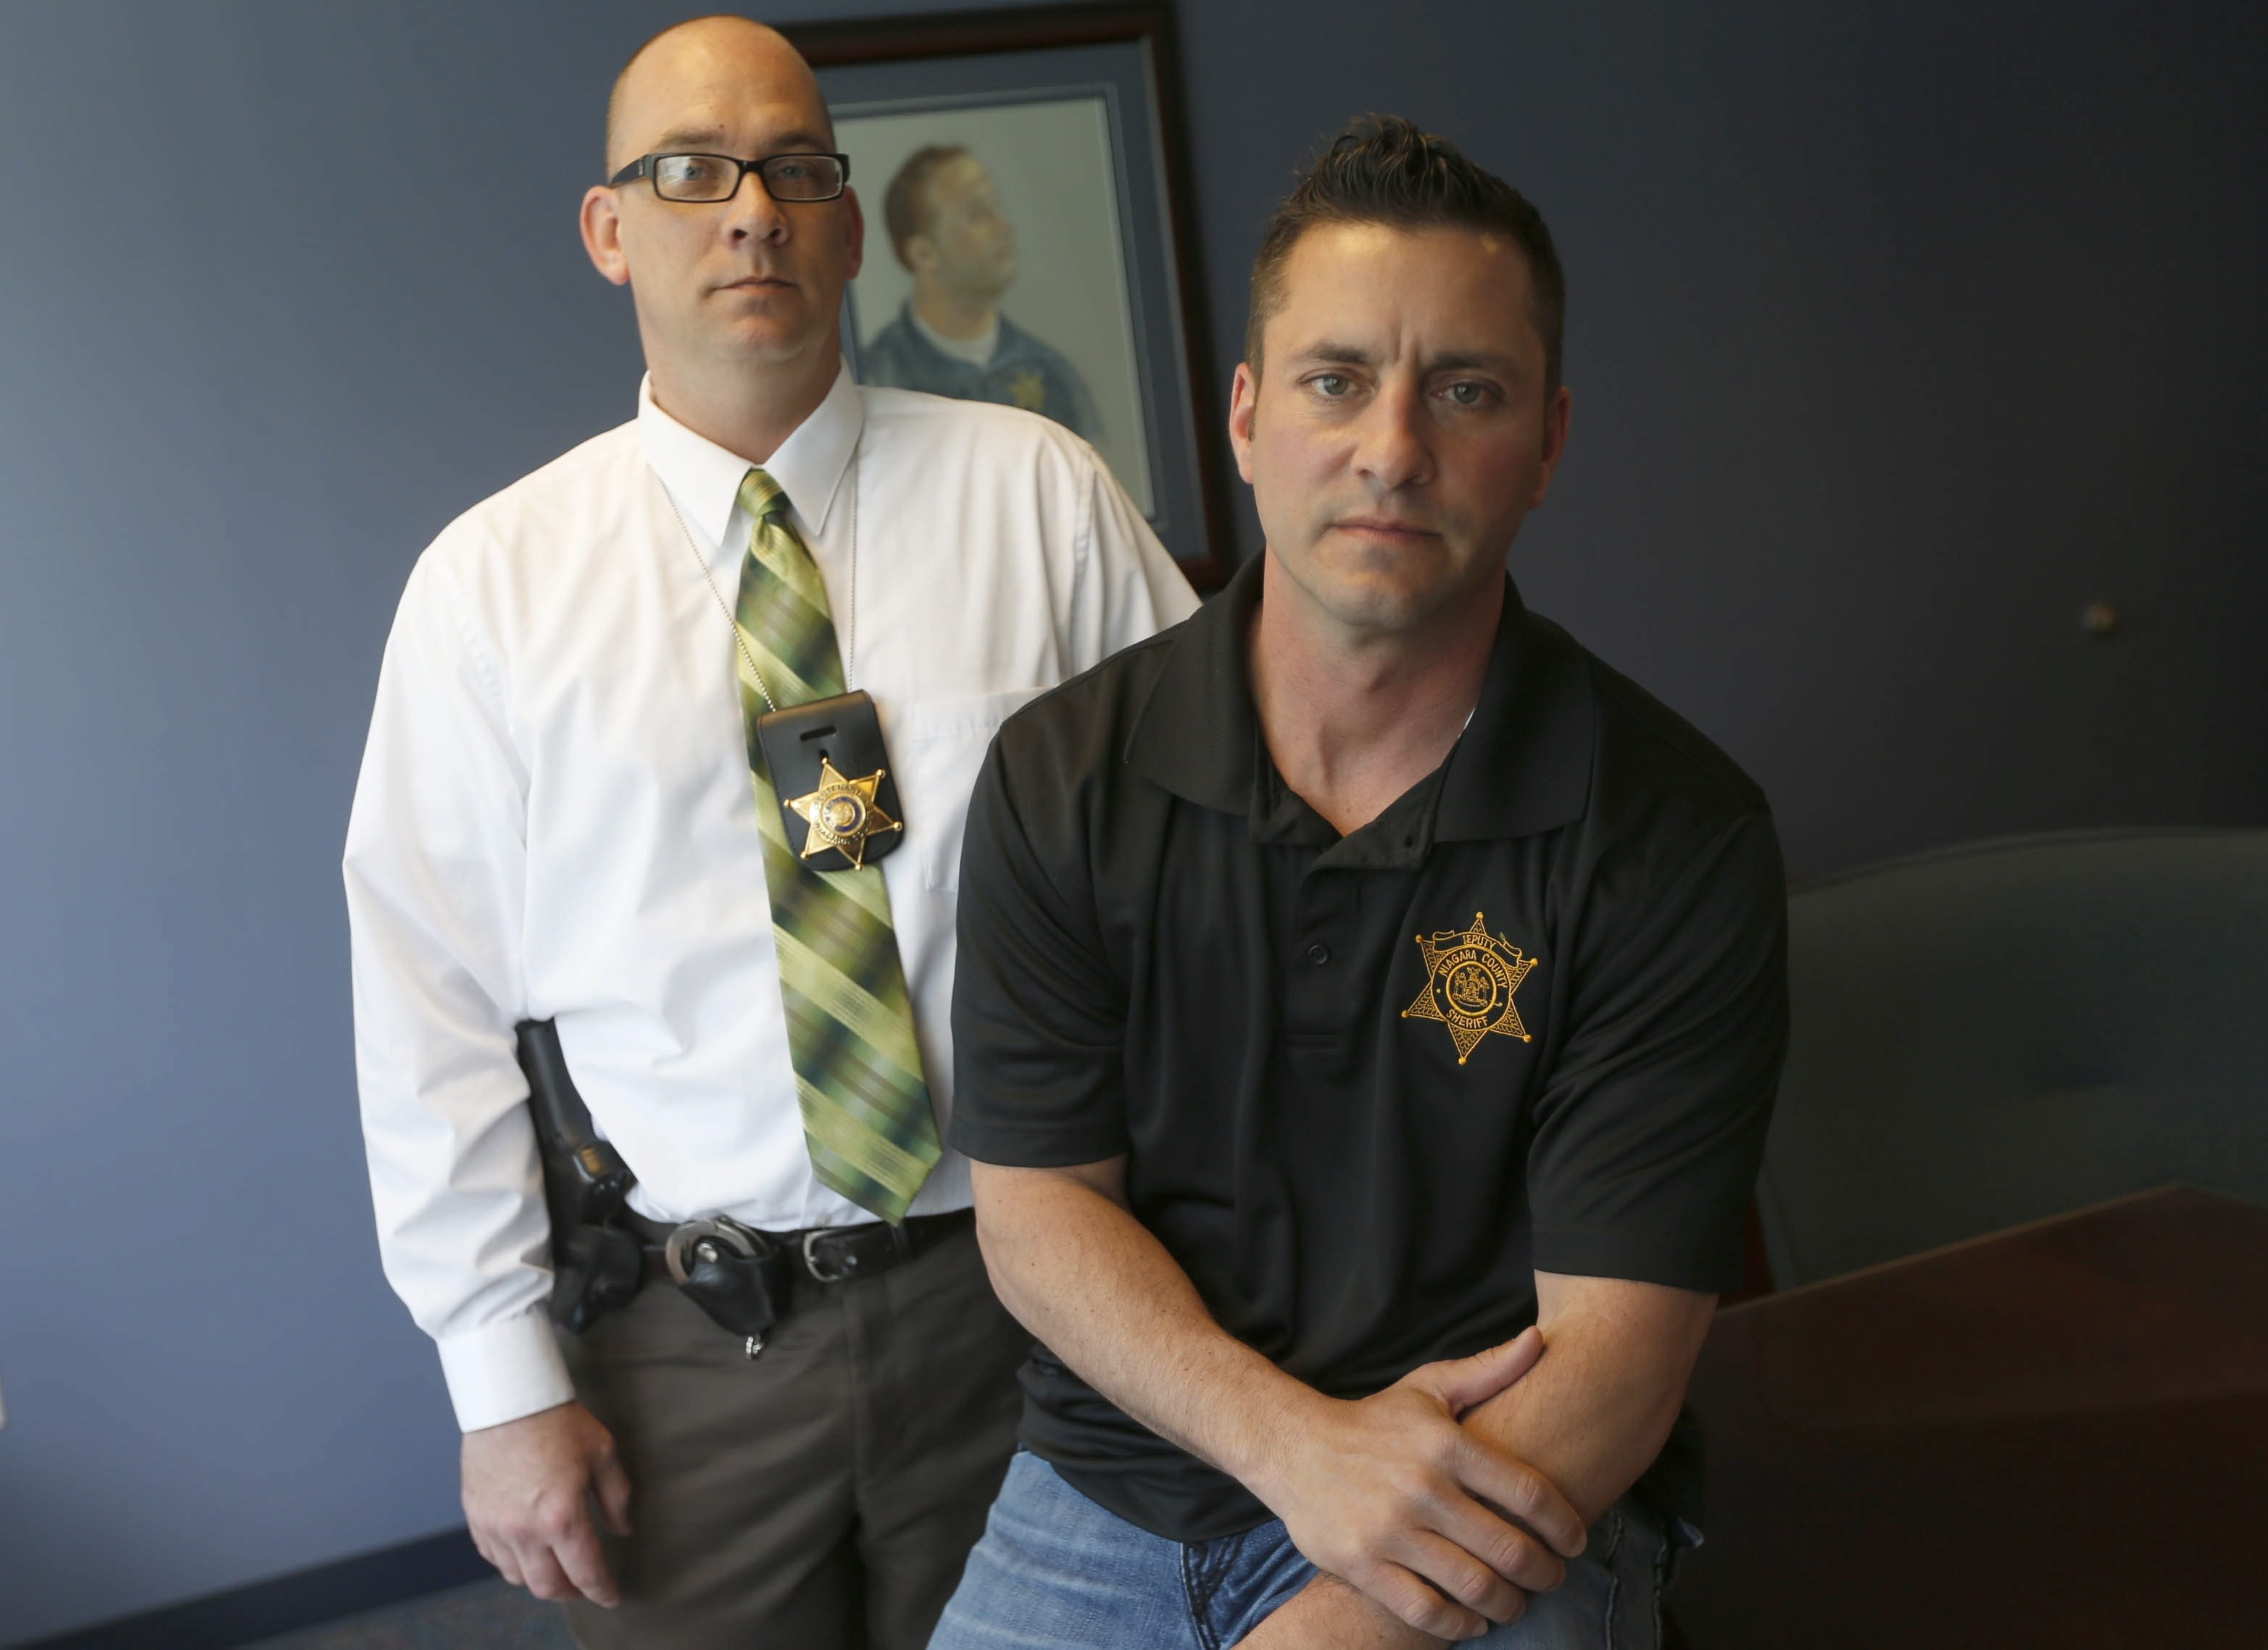 Niagara County Sheriff's Deputy Joseph L. Tortorella, right, was aided by Lt. Cory Diez after the shootout.